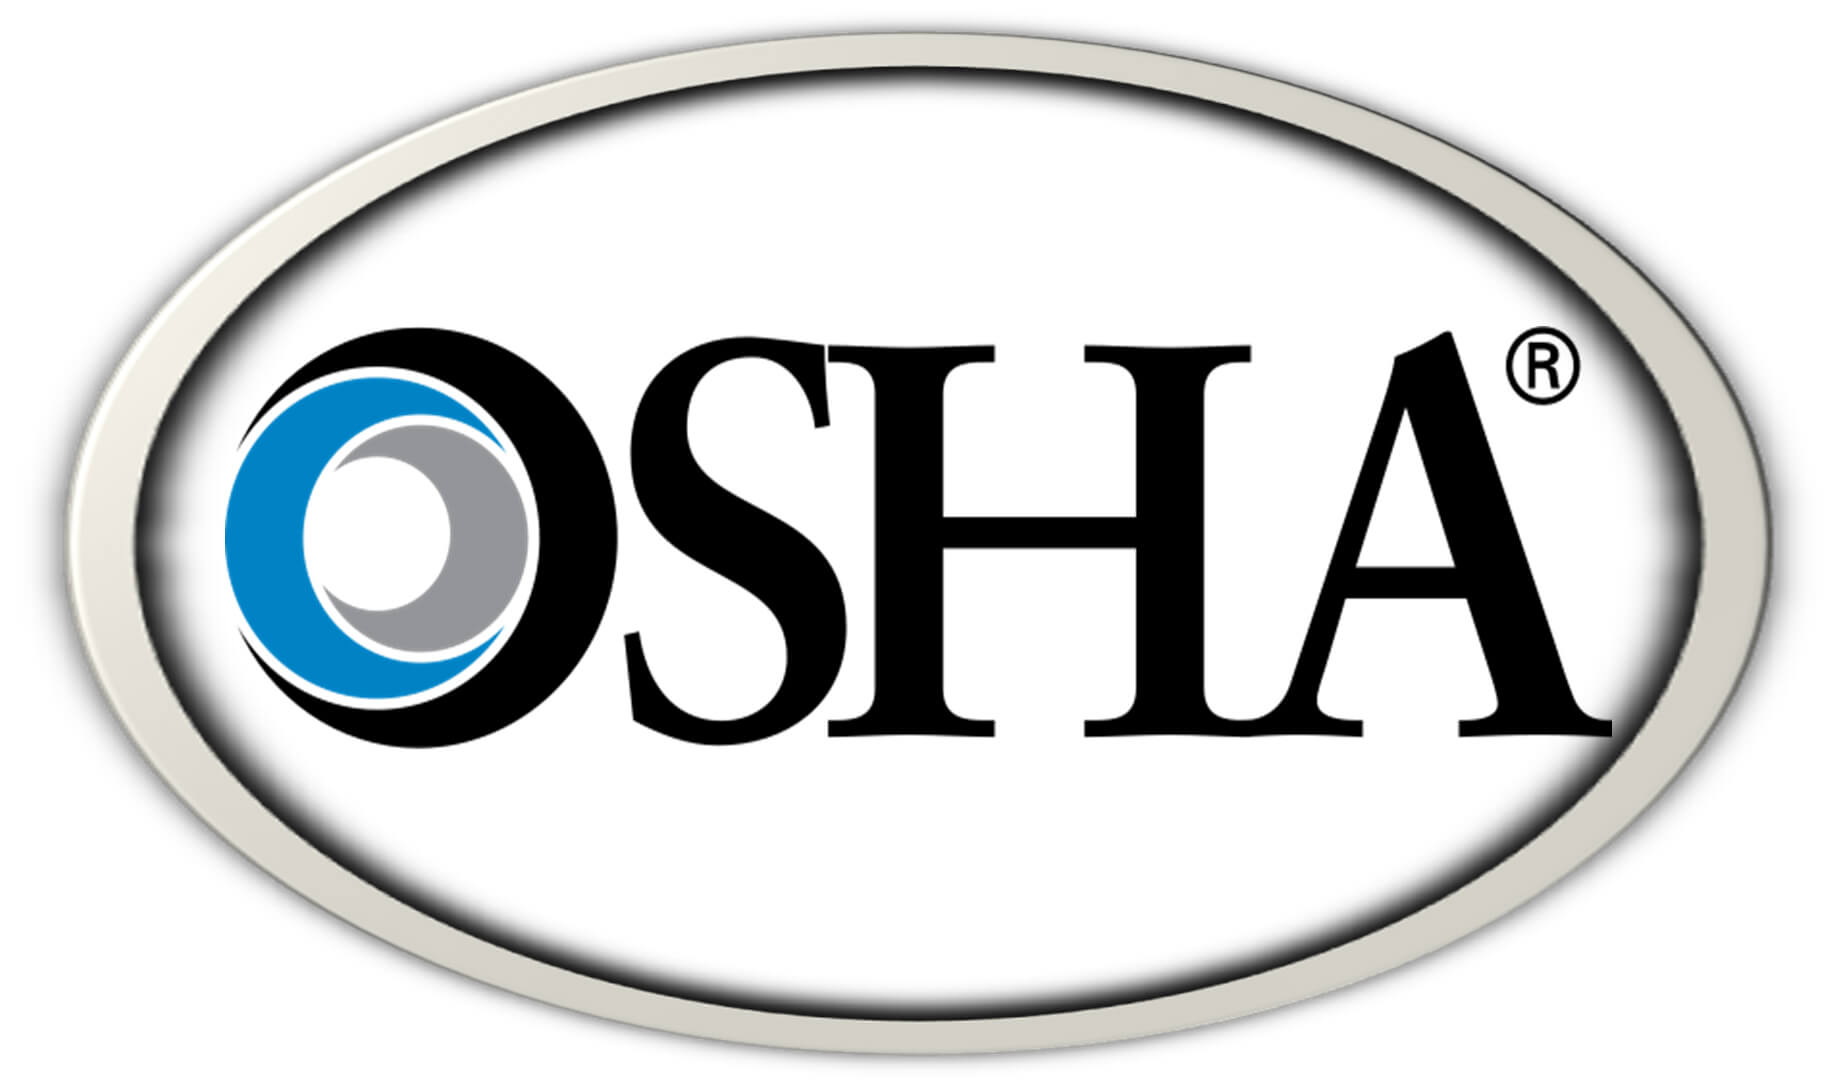 Be thankful we live in a country where OSHA protects workers